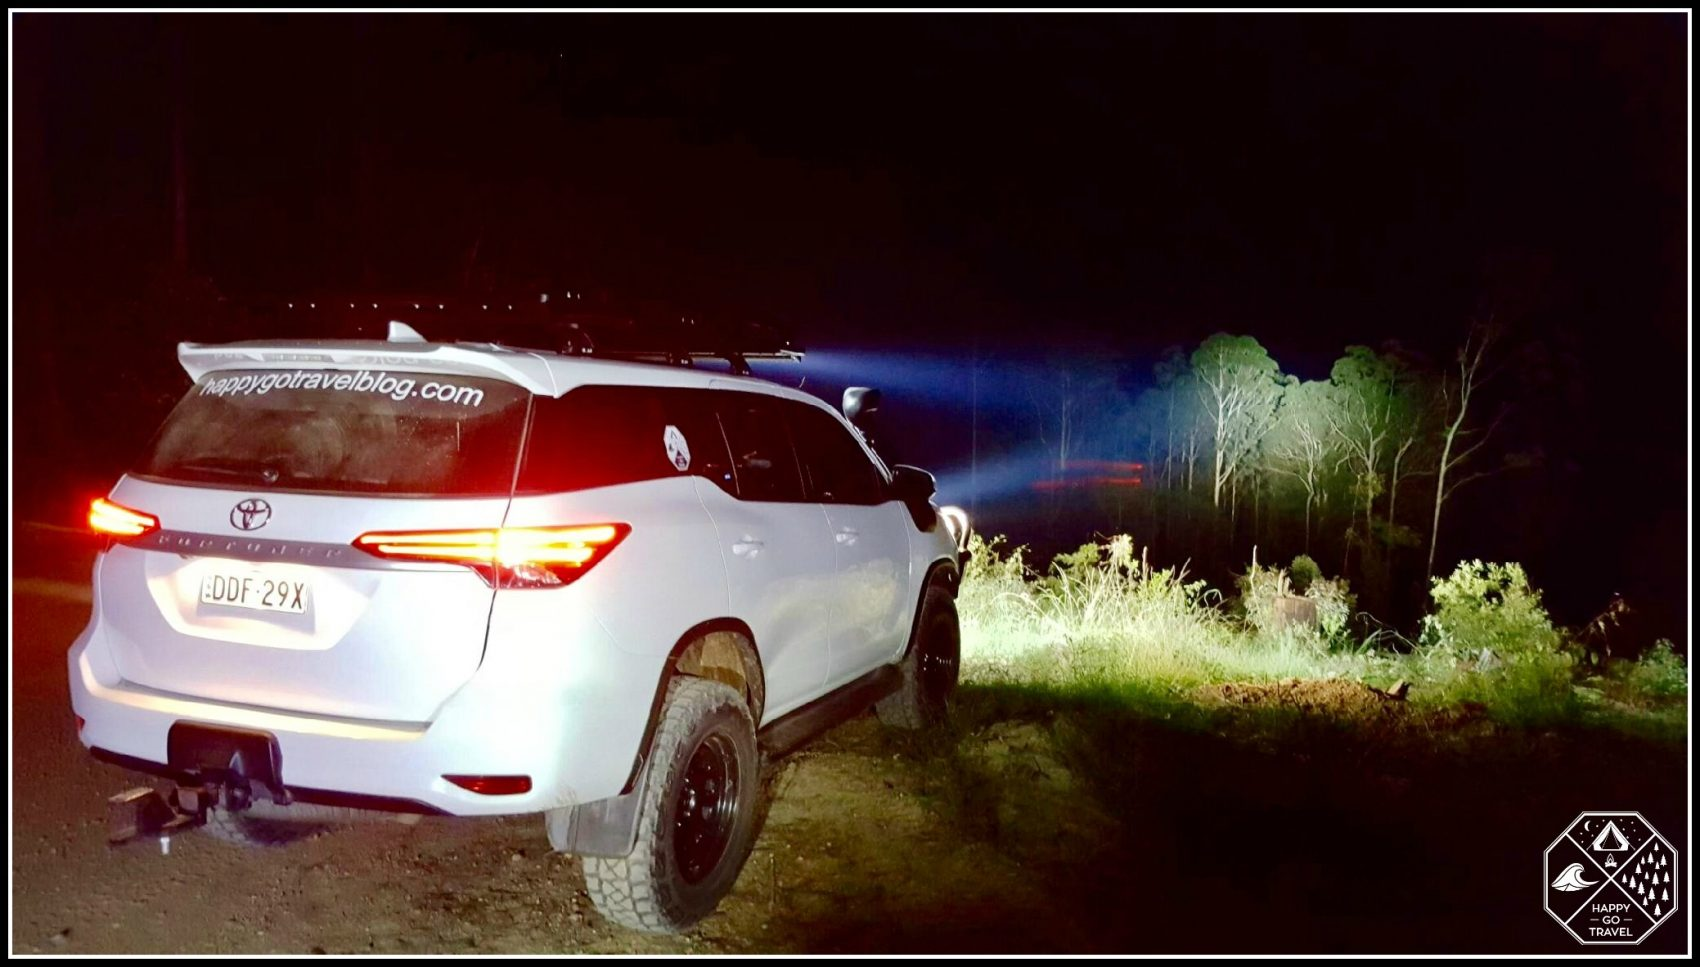 Toyota Fortuner Lighting up trees off in the night with Stedi led light bars.